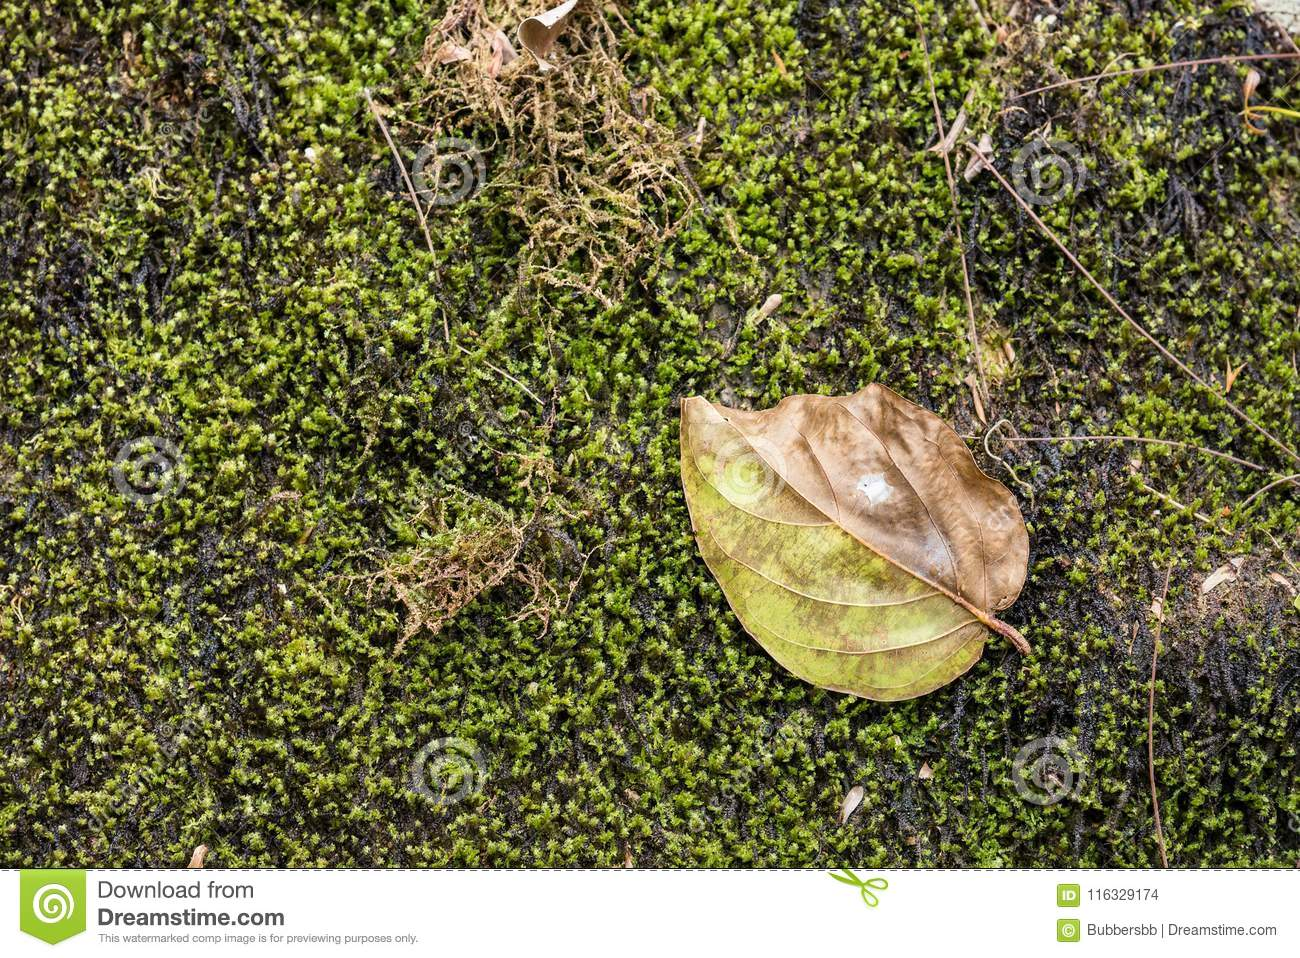 Dry leaf on a mossy rock in a rainforest.Thailand.Copy space background, Use for website banner background, backdrop, montage men